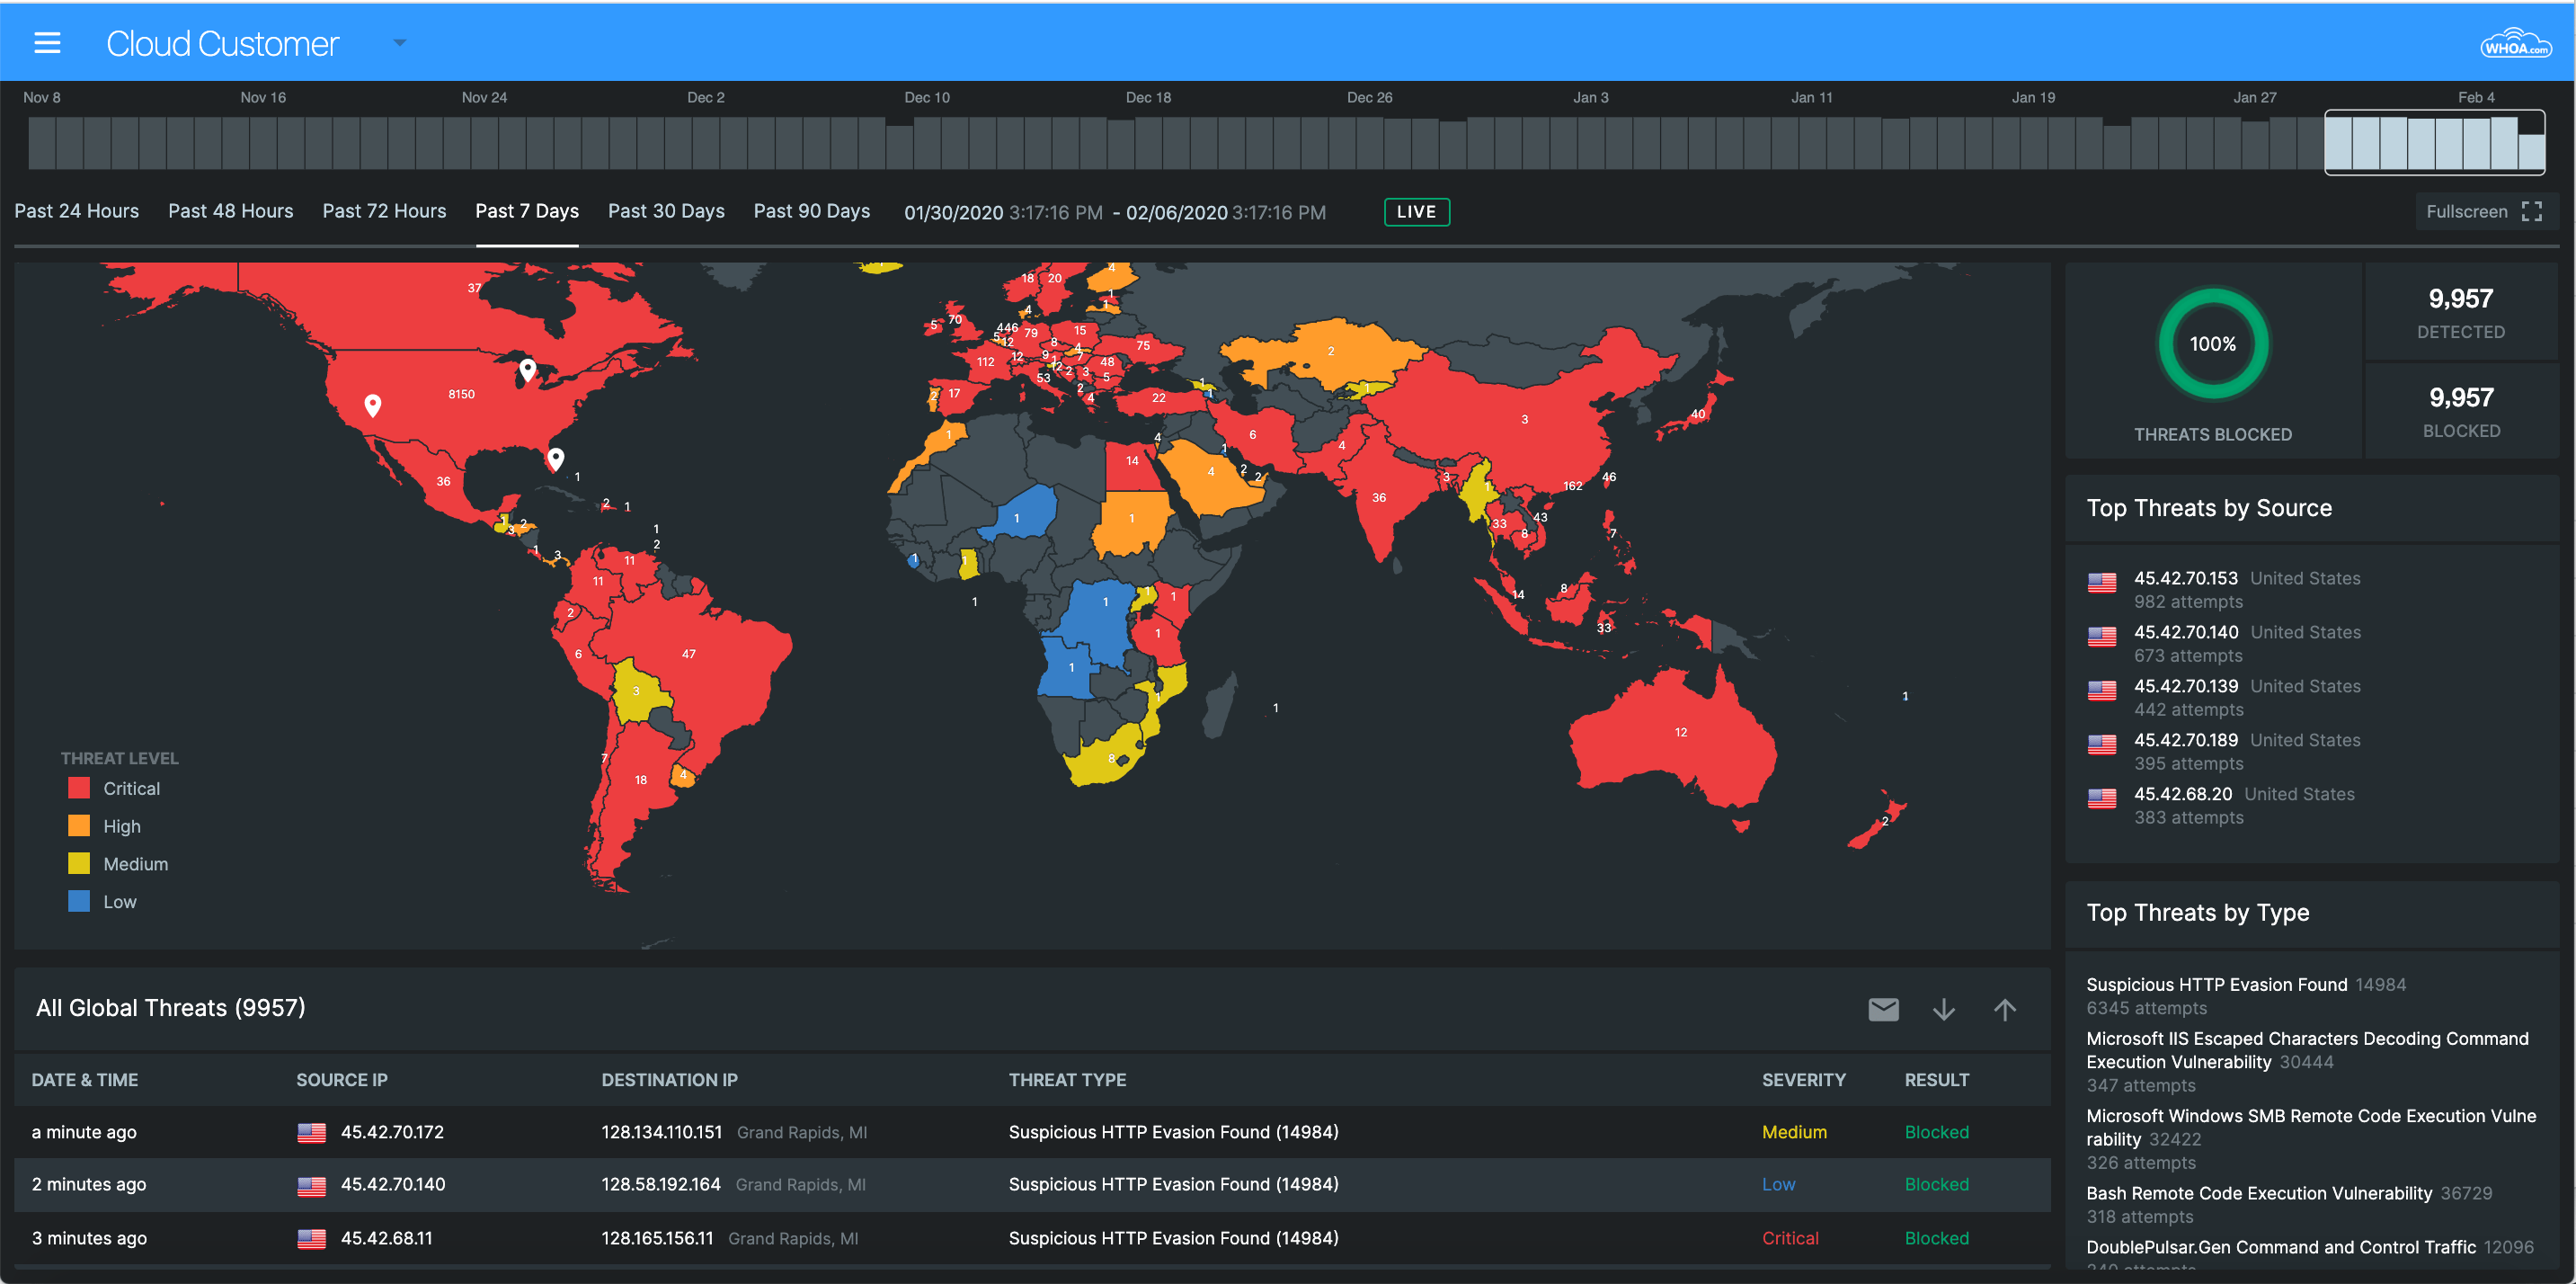 The main TOPS dashboard view. Allows the user to change the date range to see threats within the last 90 days.